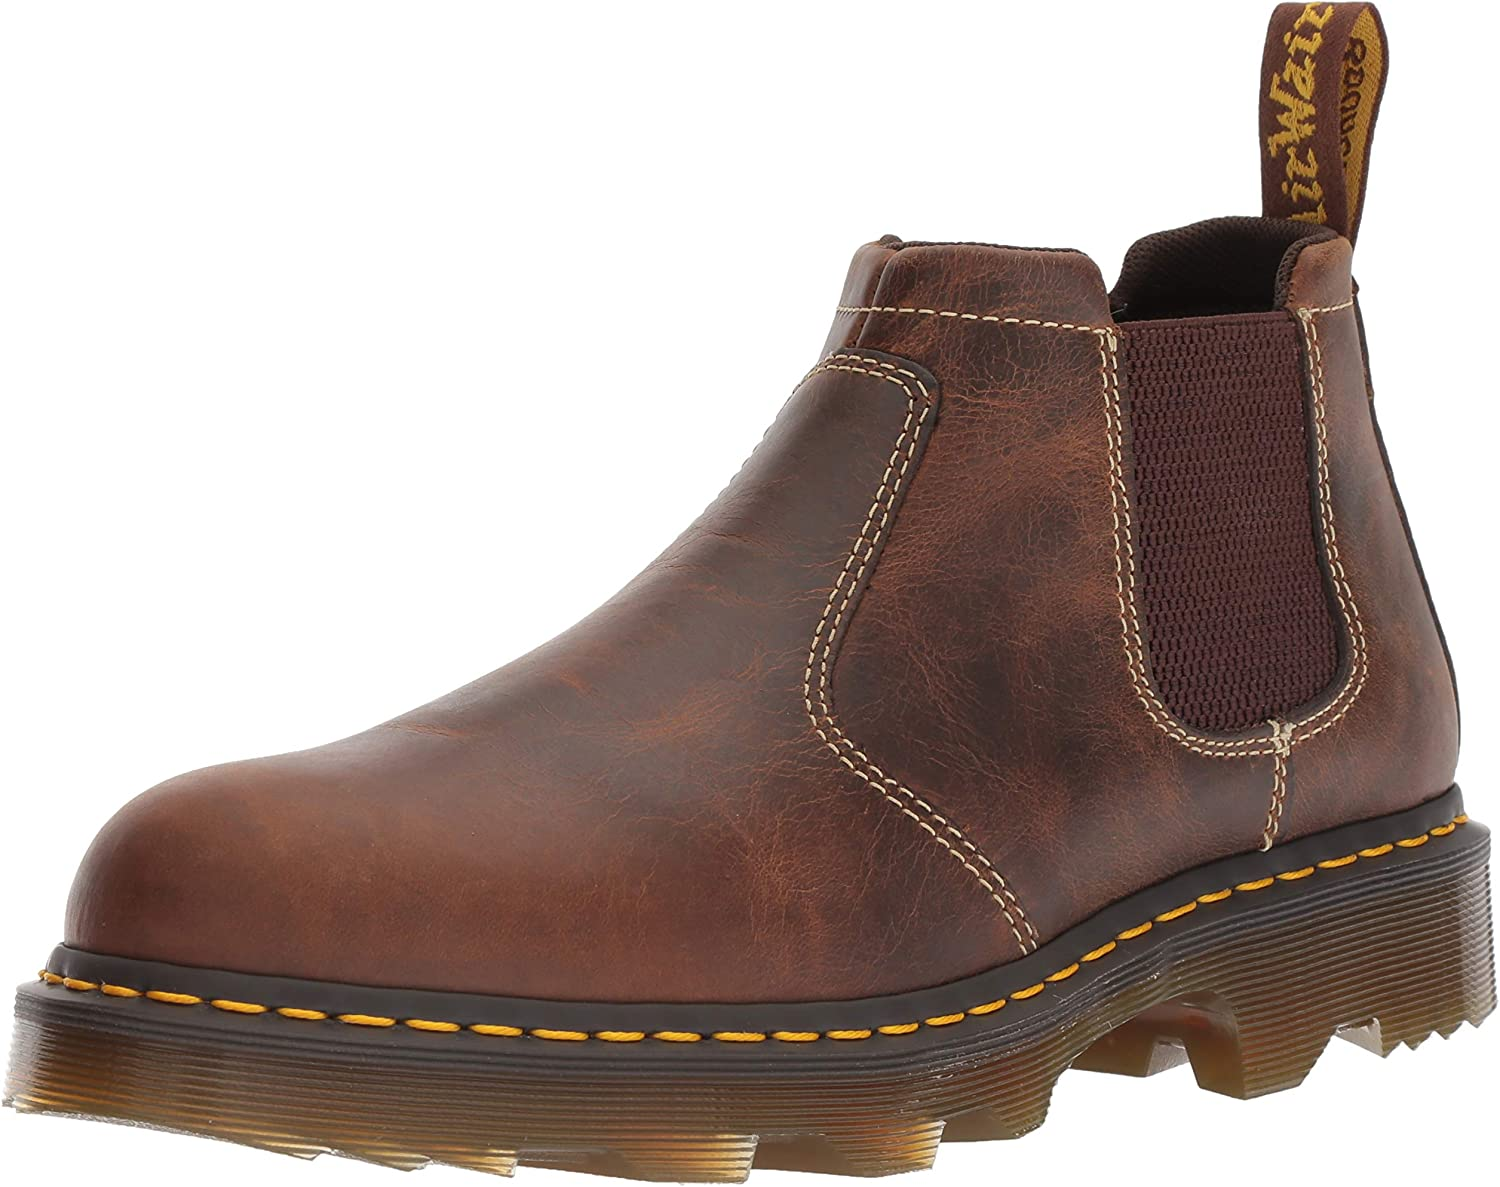 B079RLB6WR Dr. Martens Mens Penly Chelsea Work Boot 81NJKYsPsOL